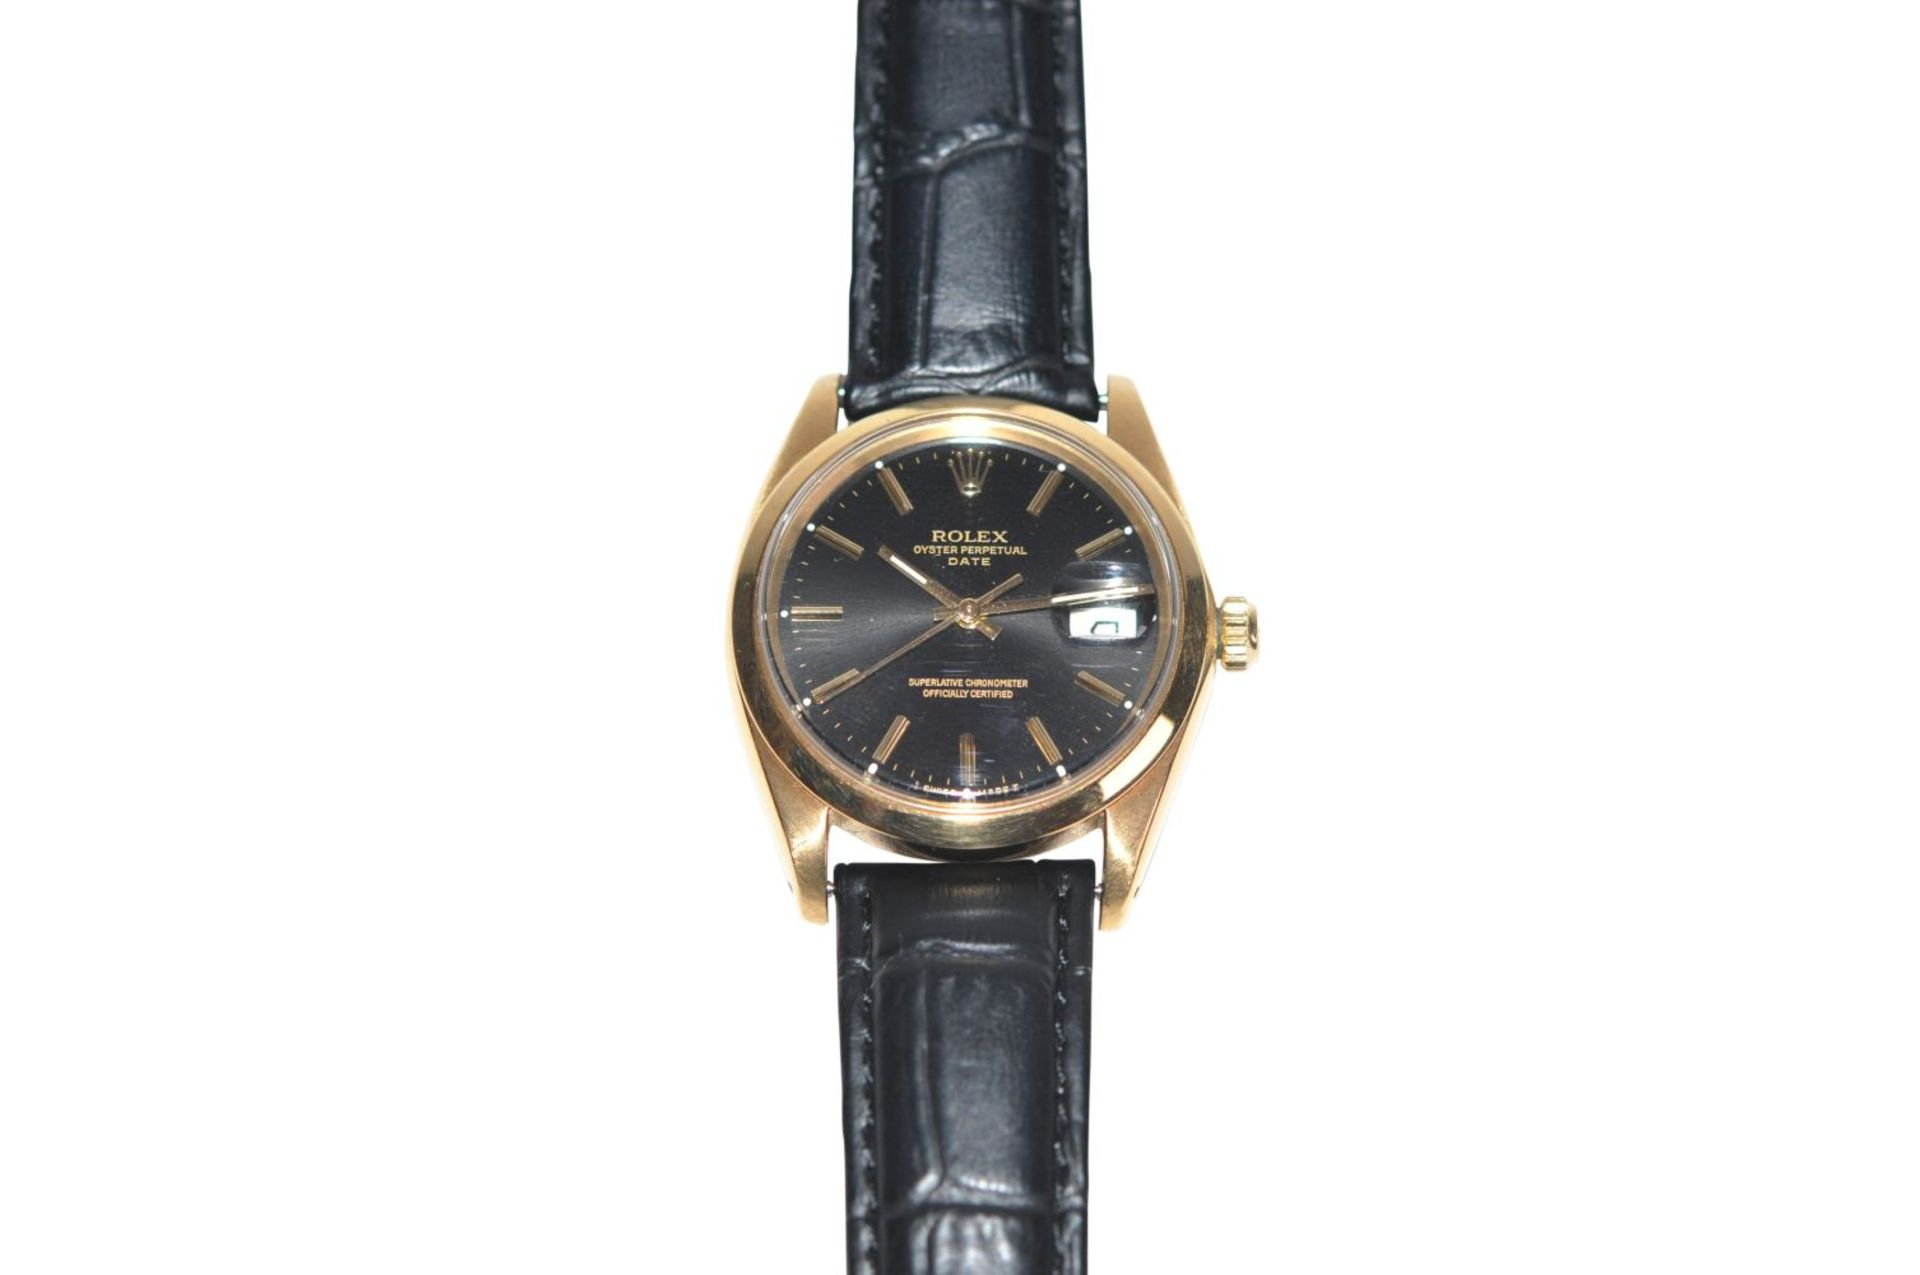 Los 34 - Rolex Date 1500/8 18 kt gold watch with black dial reference 1500/8 with enclosed certificate of